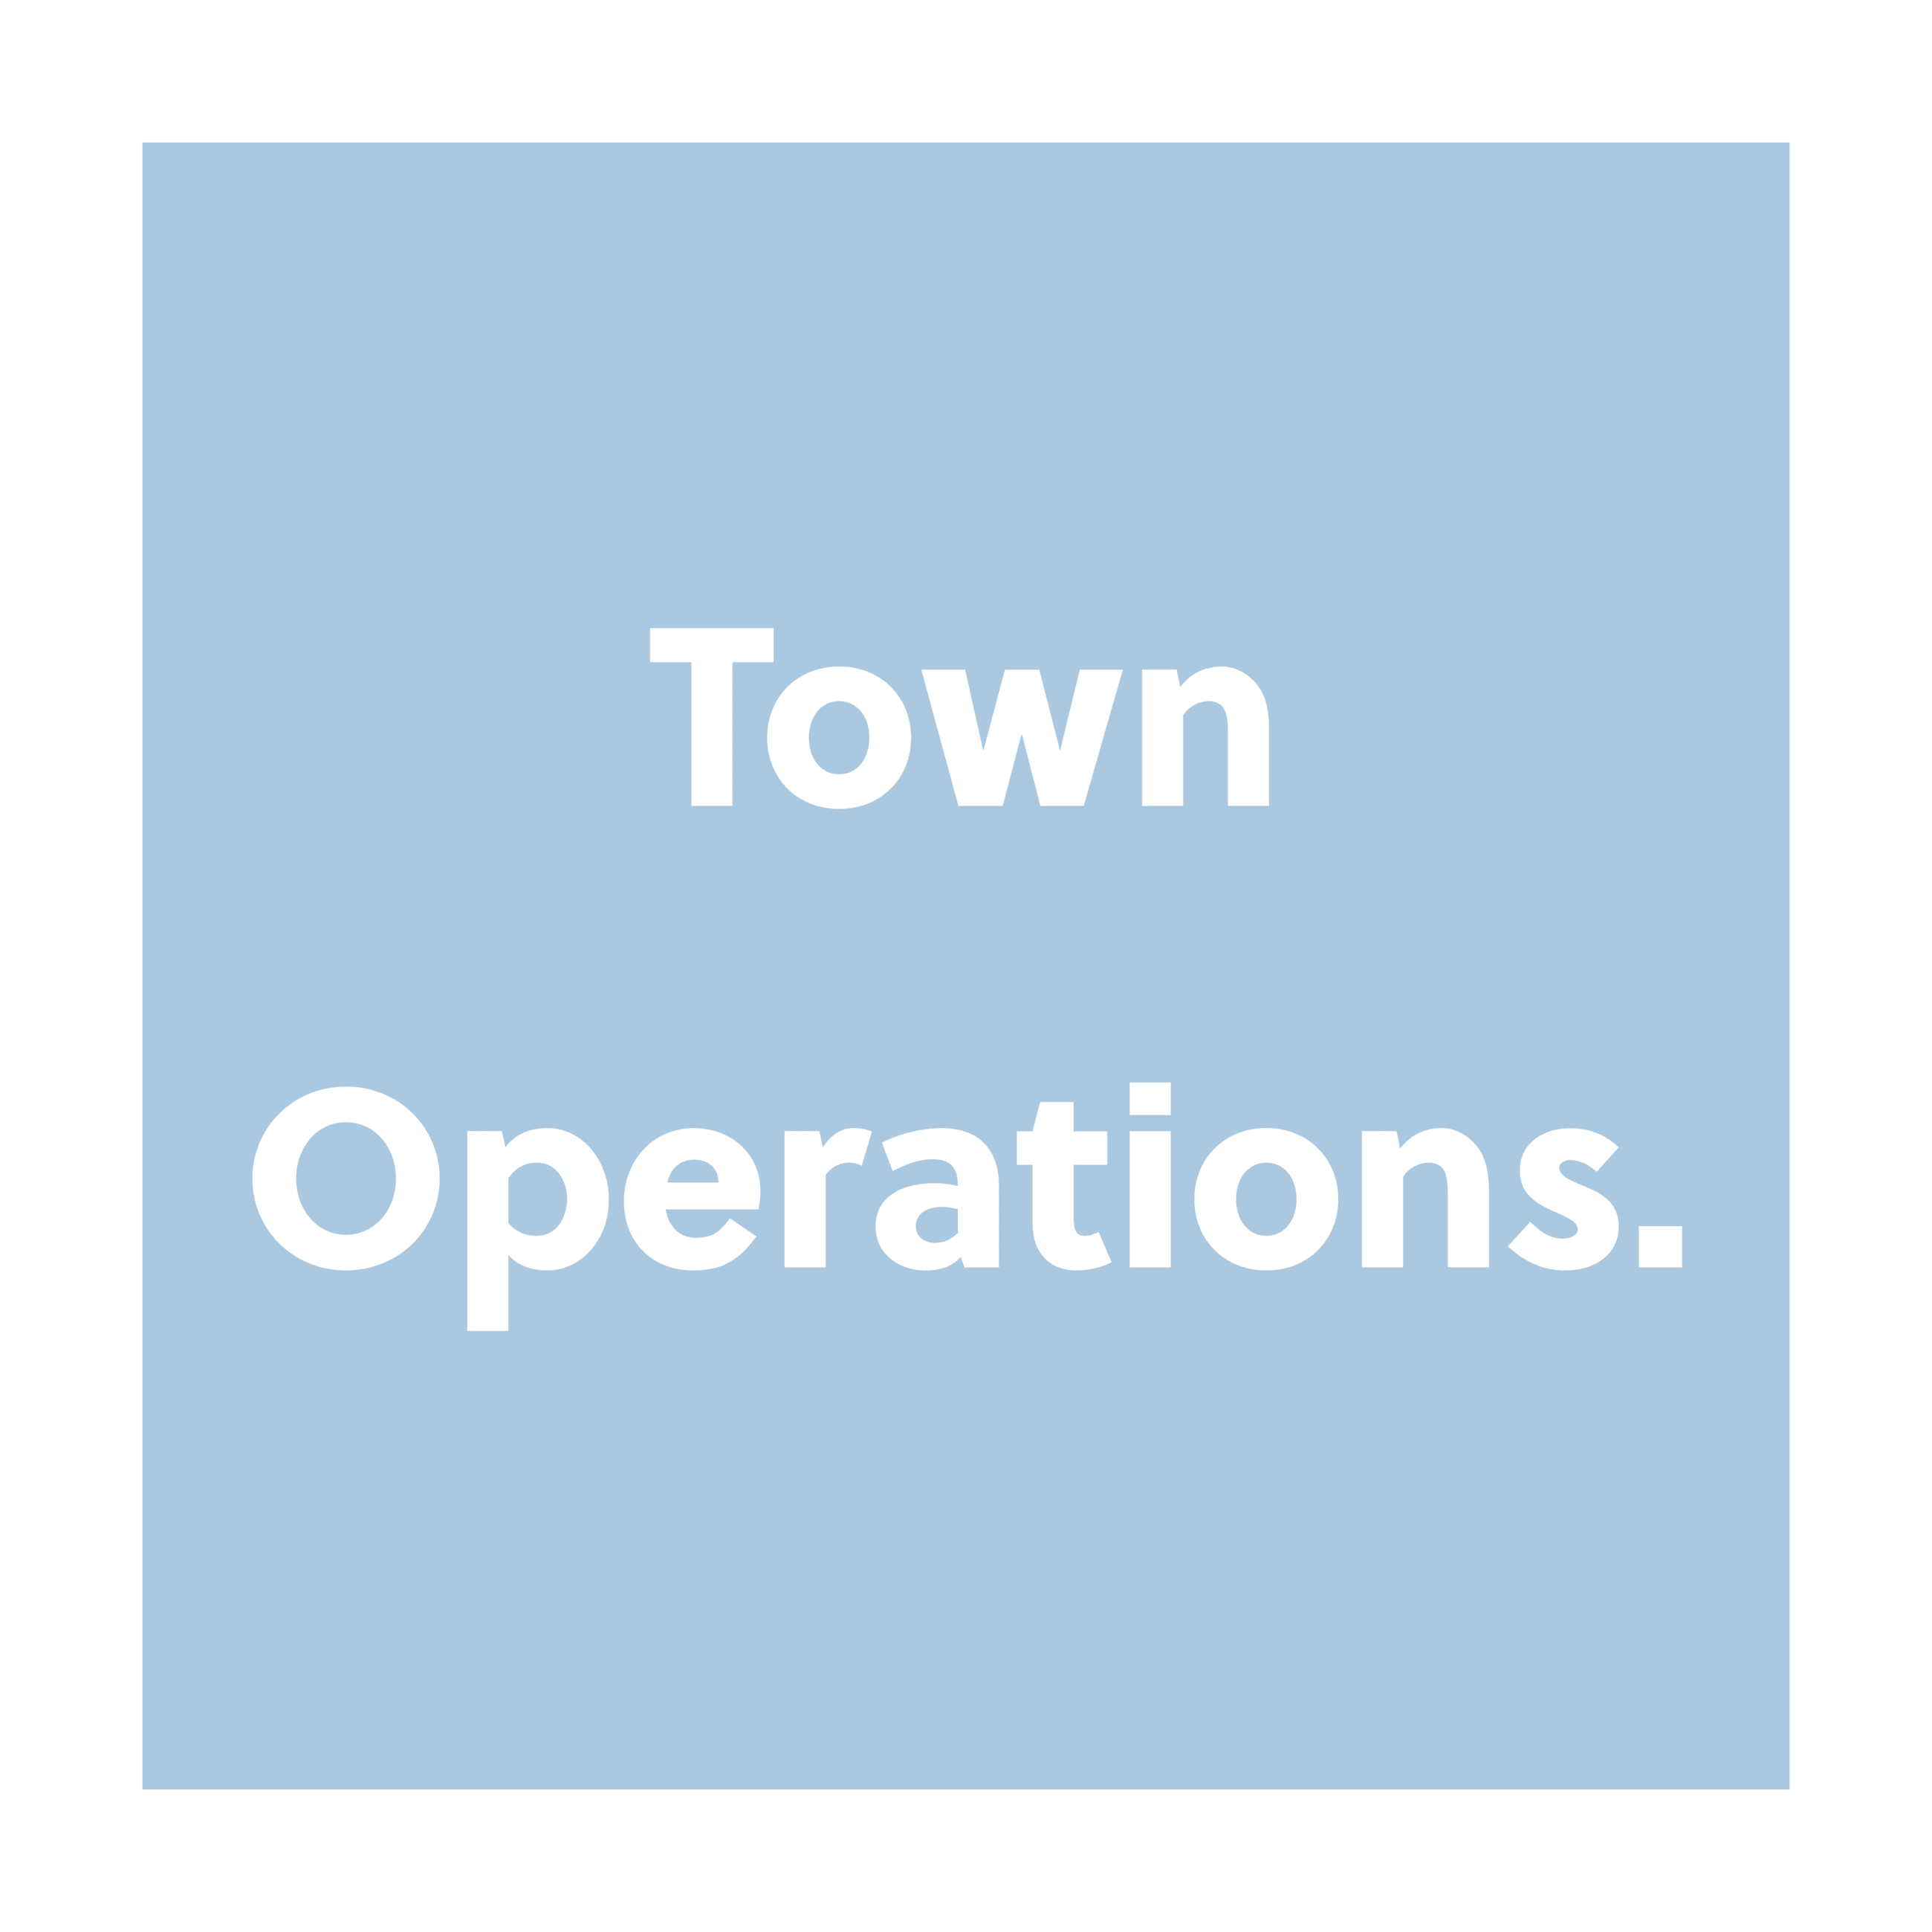 Continuity of Town Operations